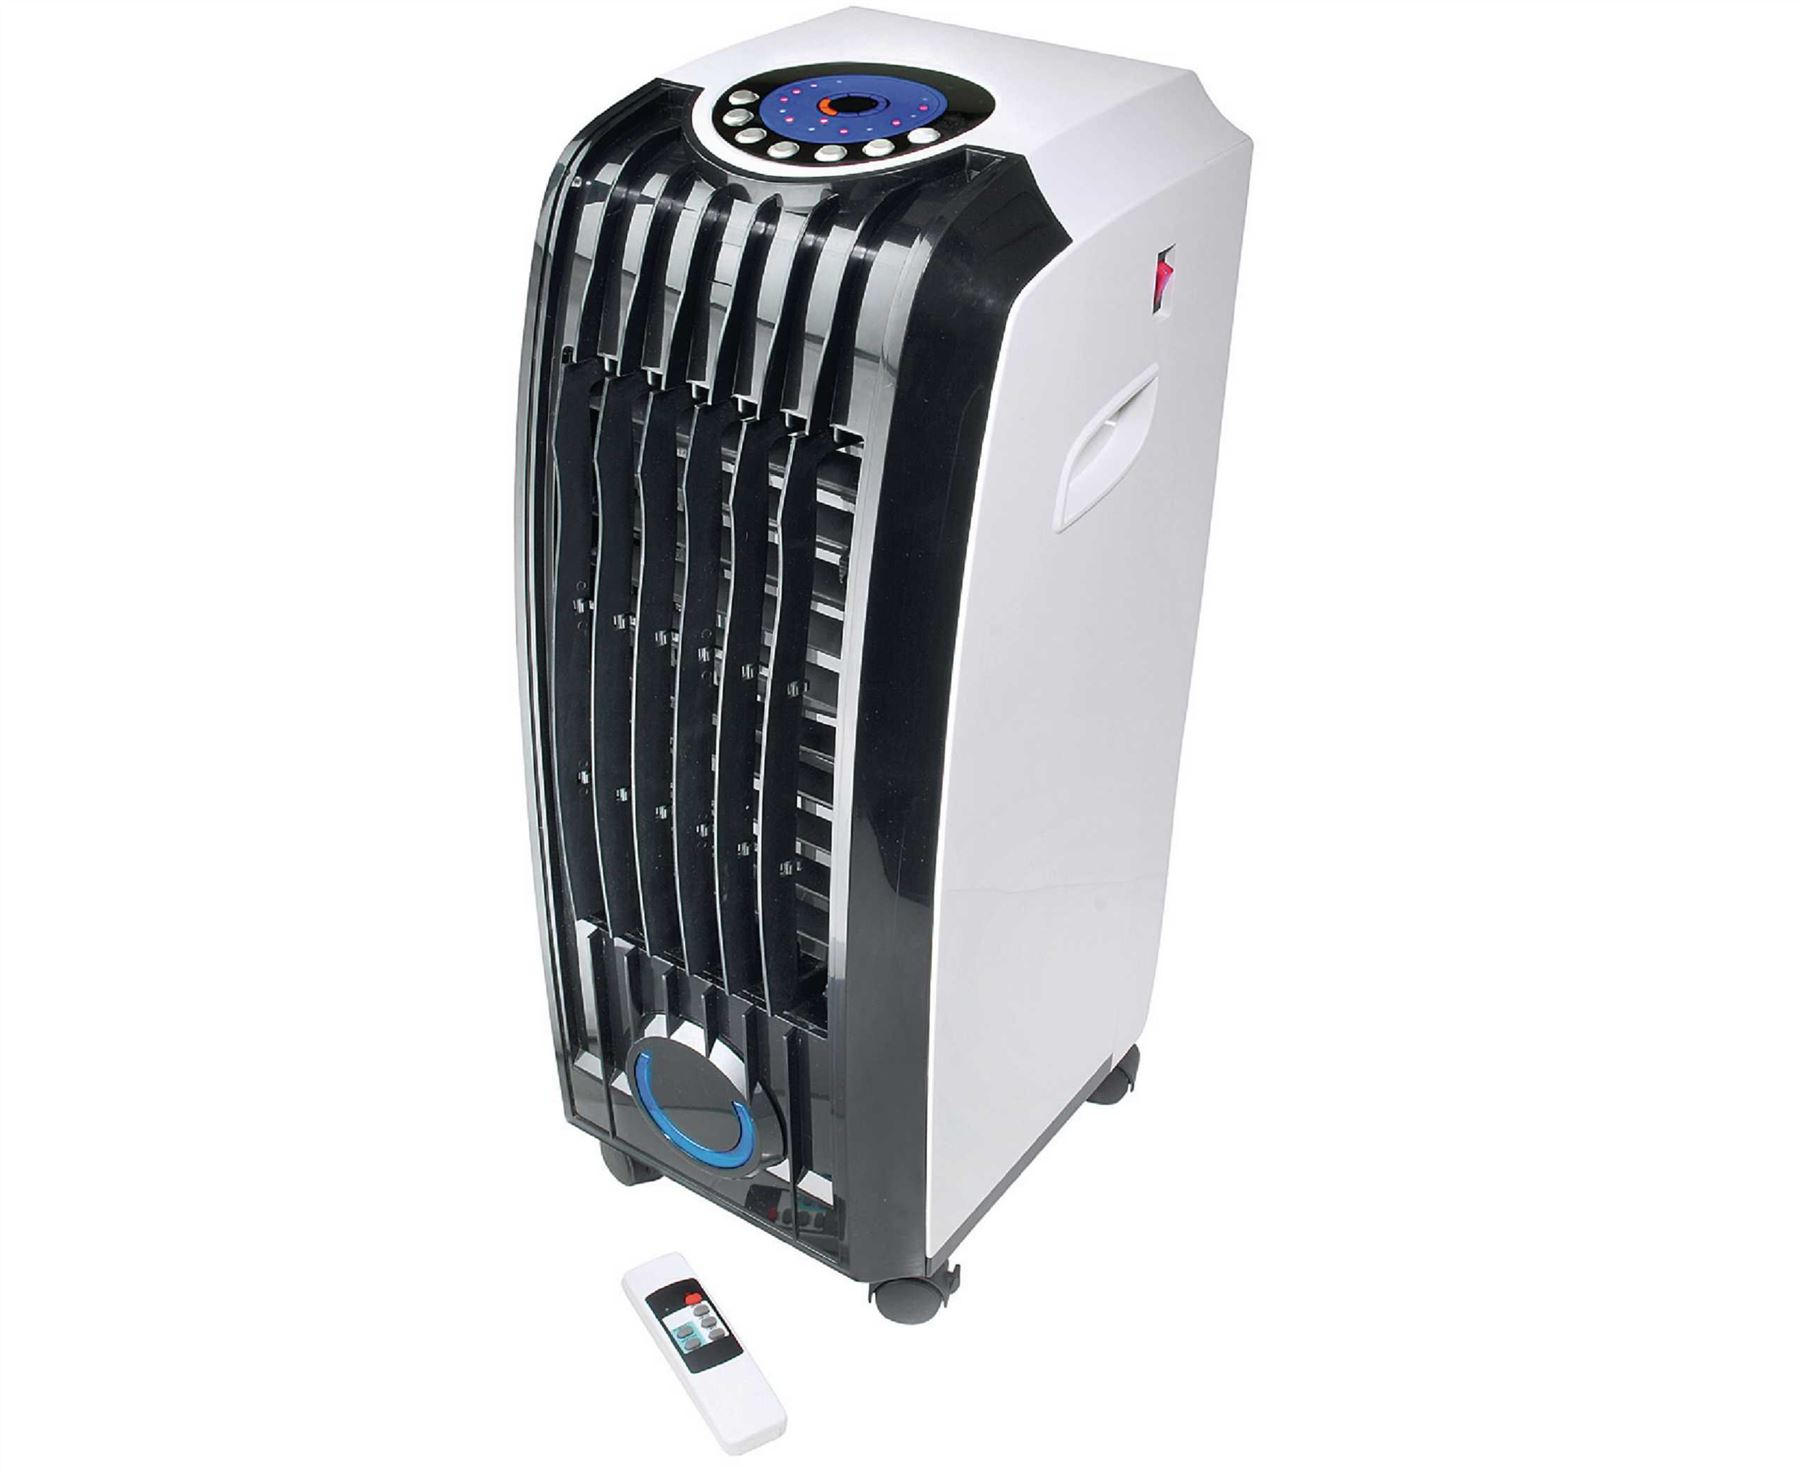 Air Cooler Fan : Neostar evaporative air cooler conditioner tower fan